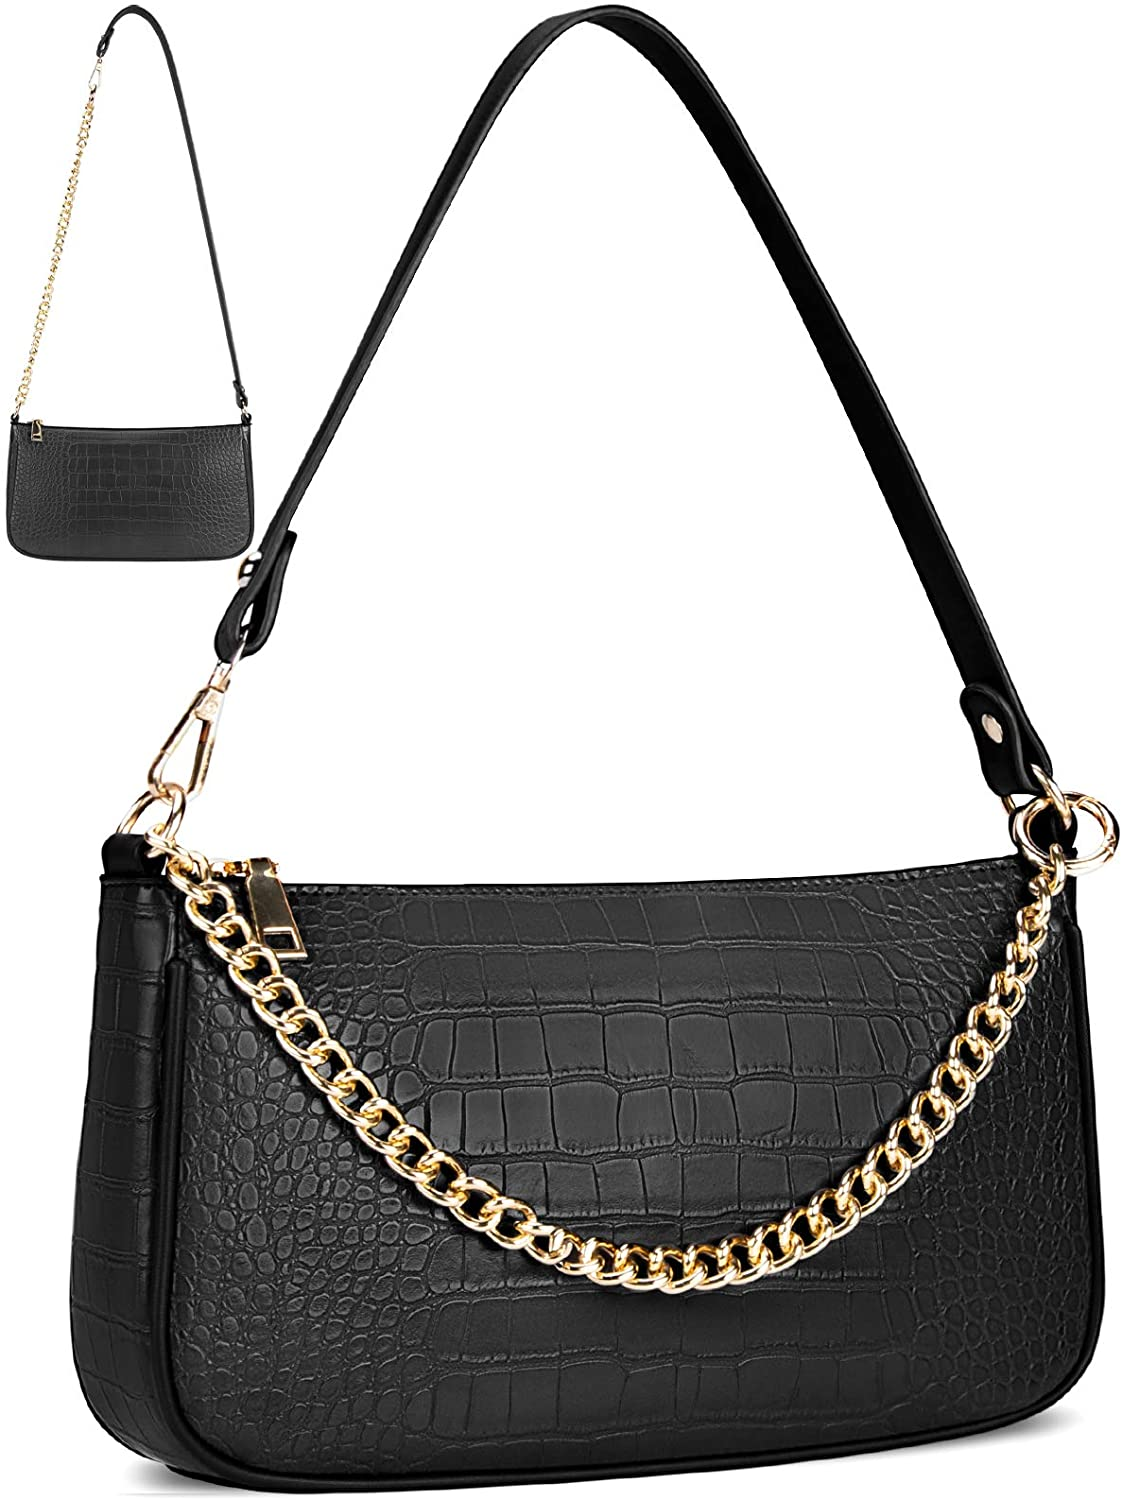 NUBILY Shoulder Bag Tampa Mall Purse for Women Ha Croc Classic Small All stores are sold Clutch